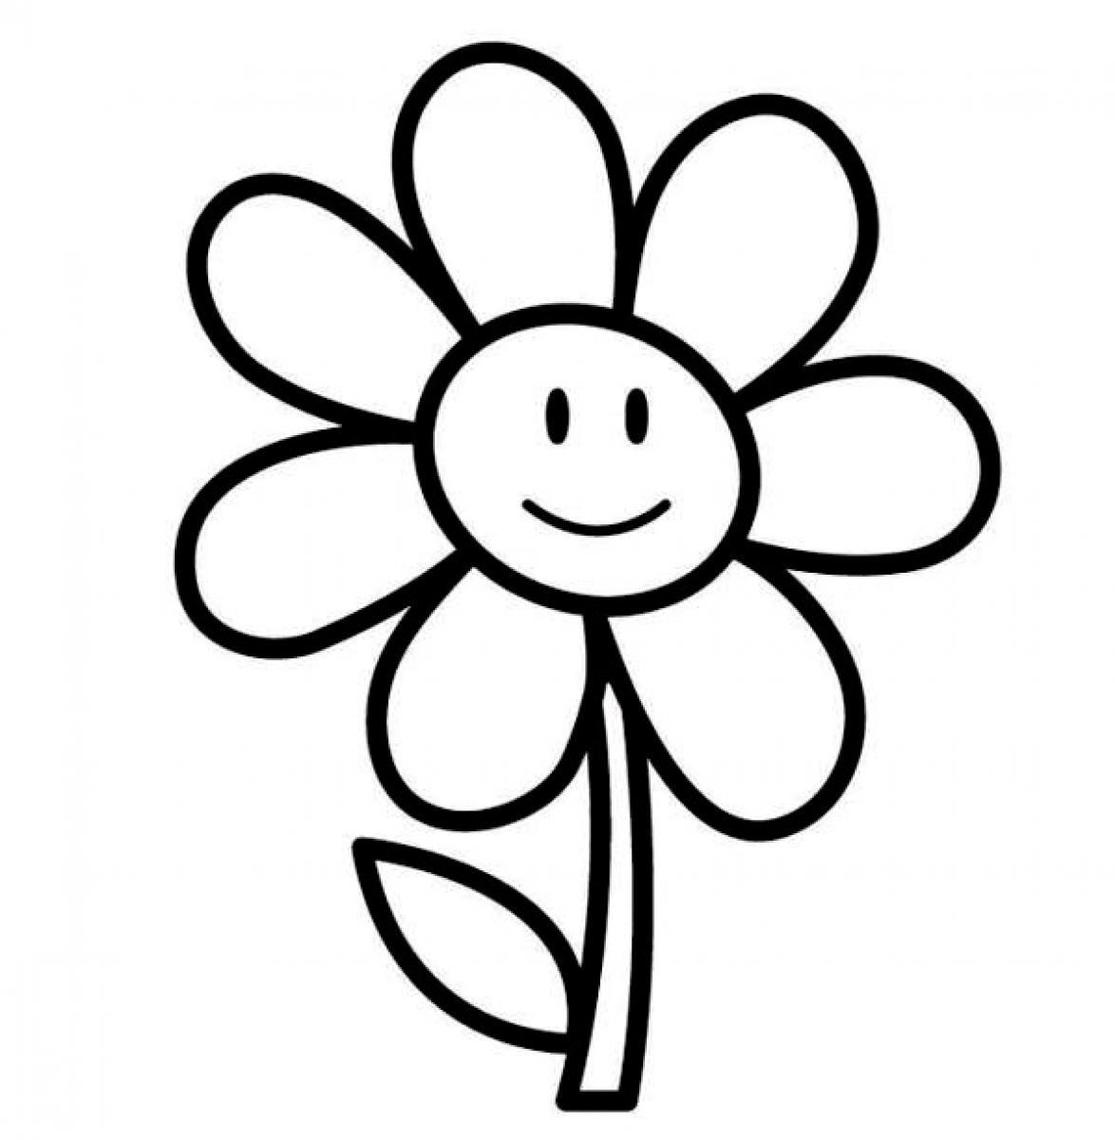 Flower Clipart Black And White & Flower Black And White Clip Art.